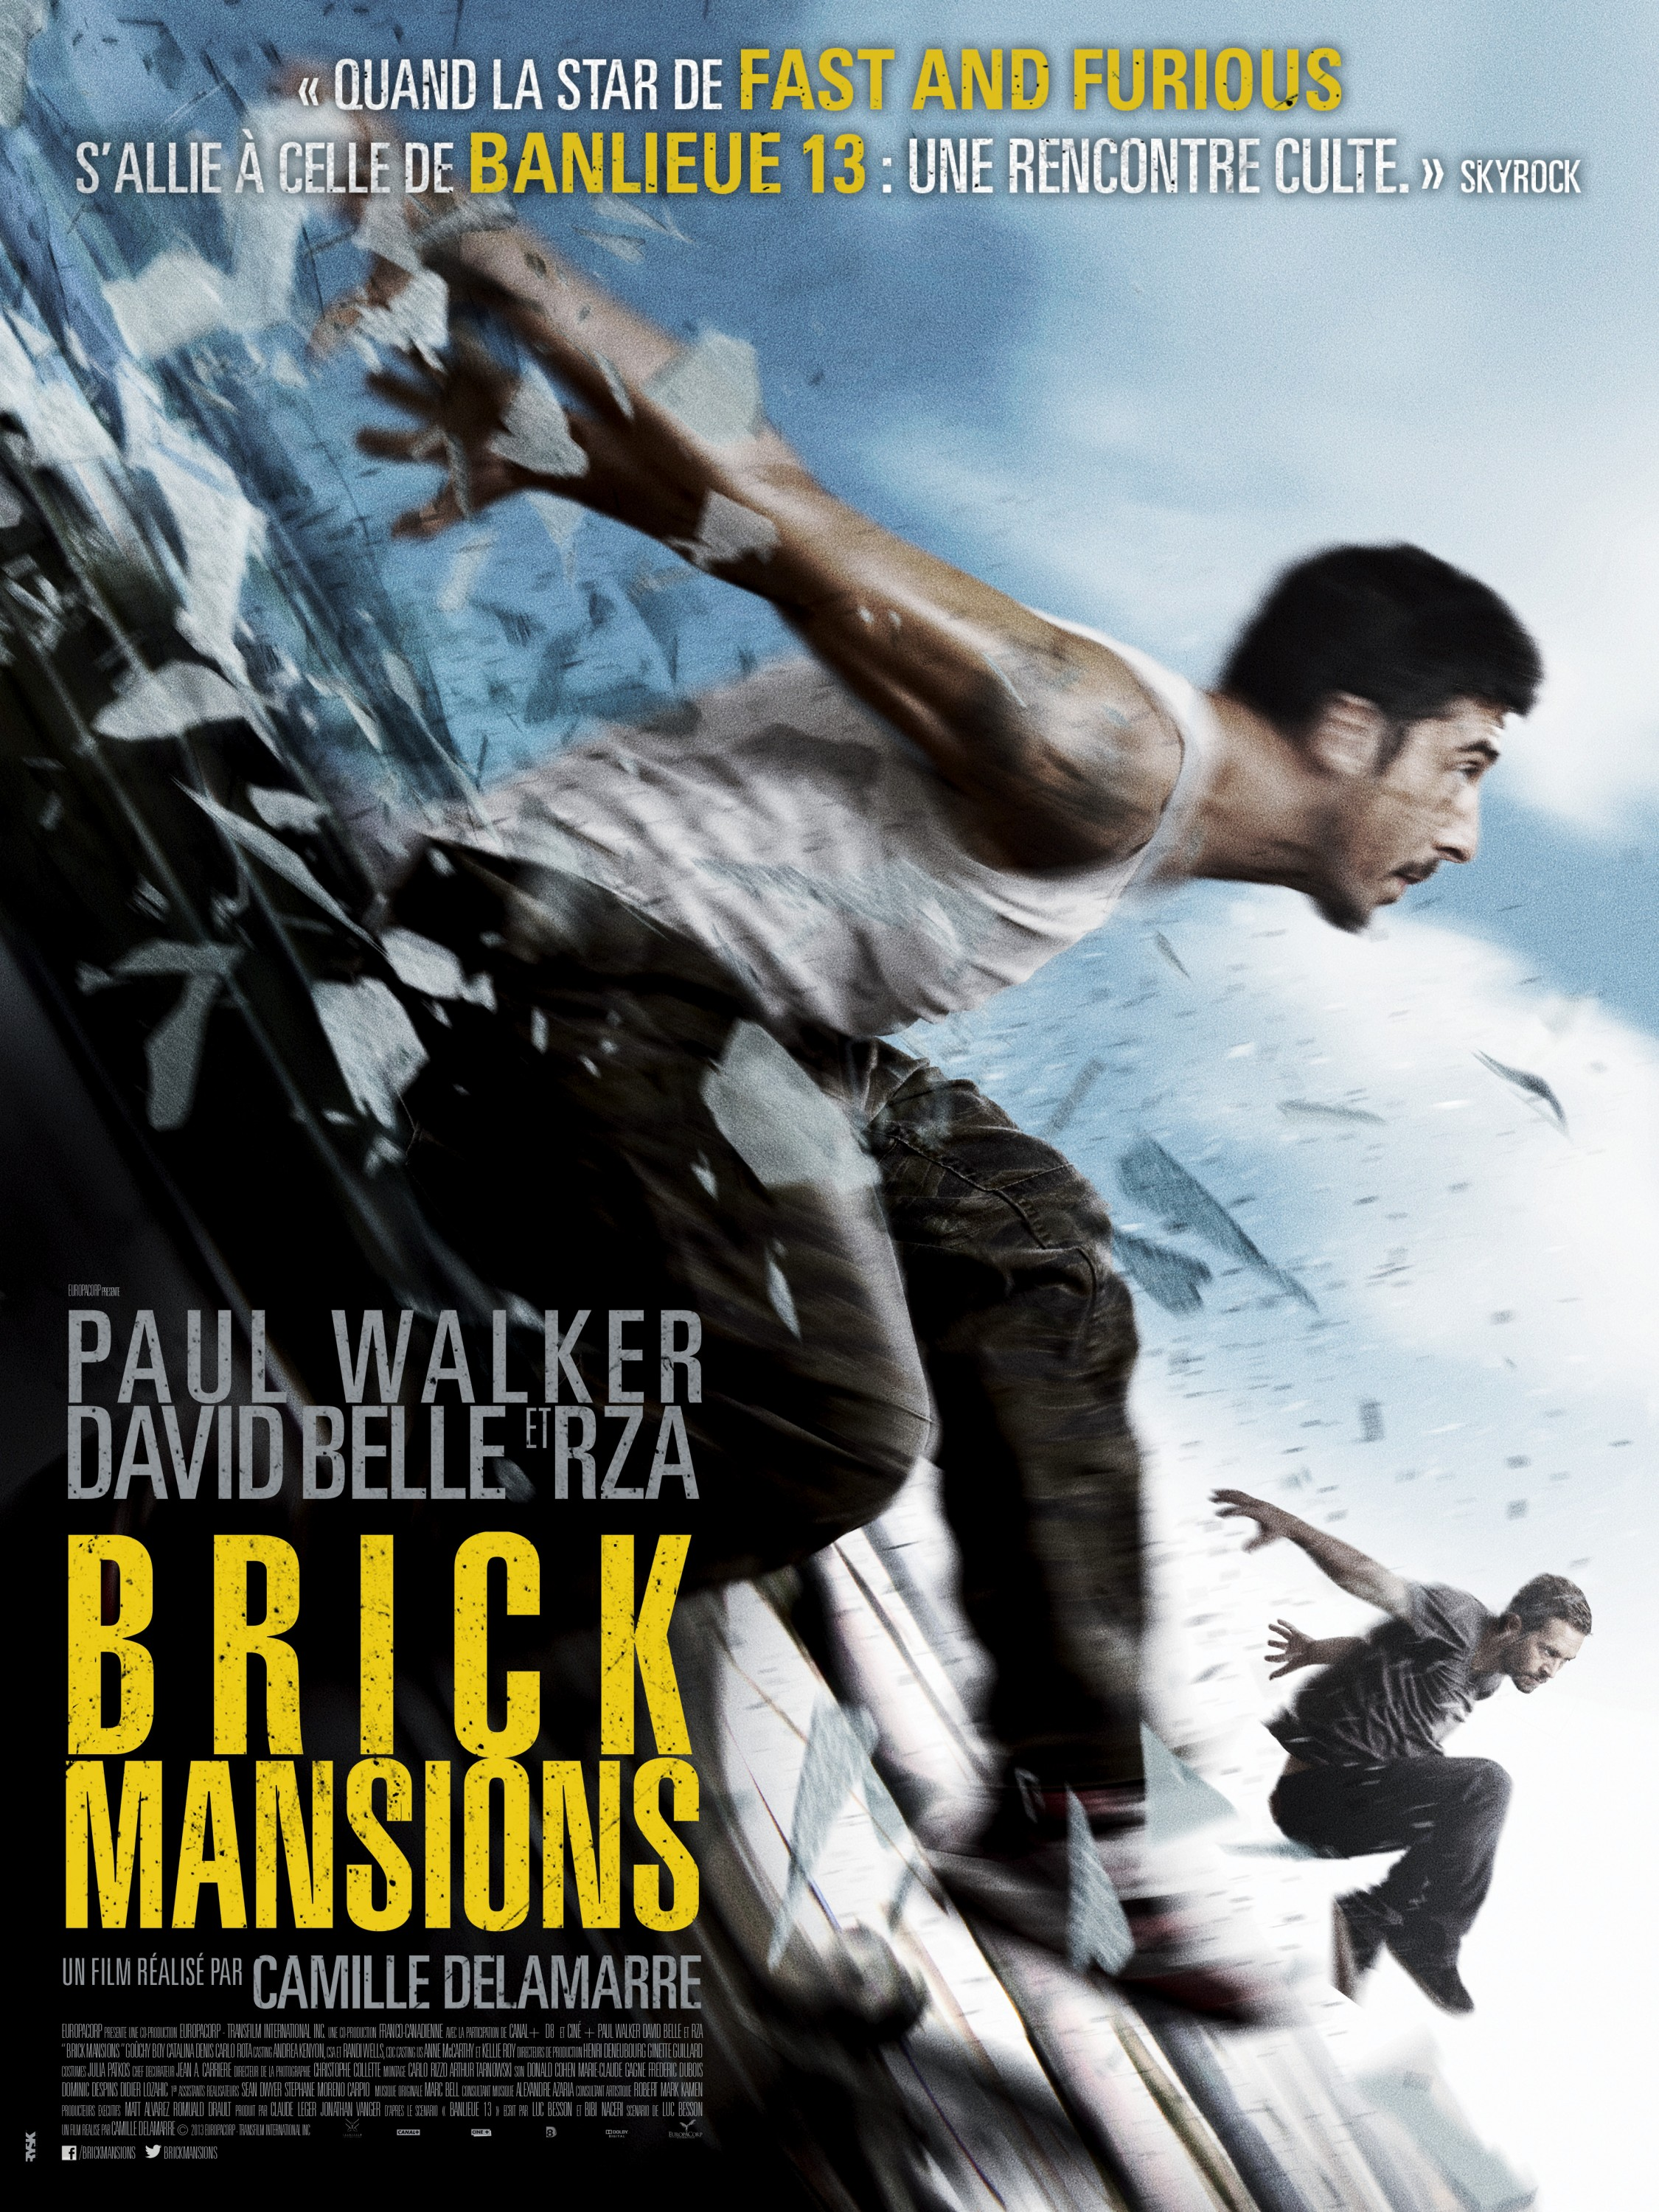 Brick Mansions-Official Poster Banner PROMO POSTER XLG-12MARCO2014-01